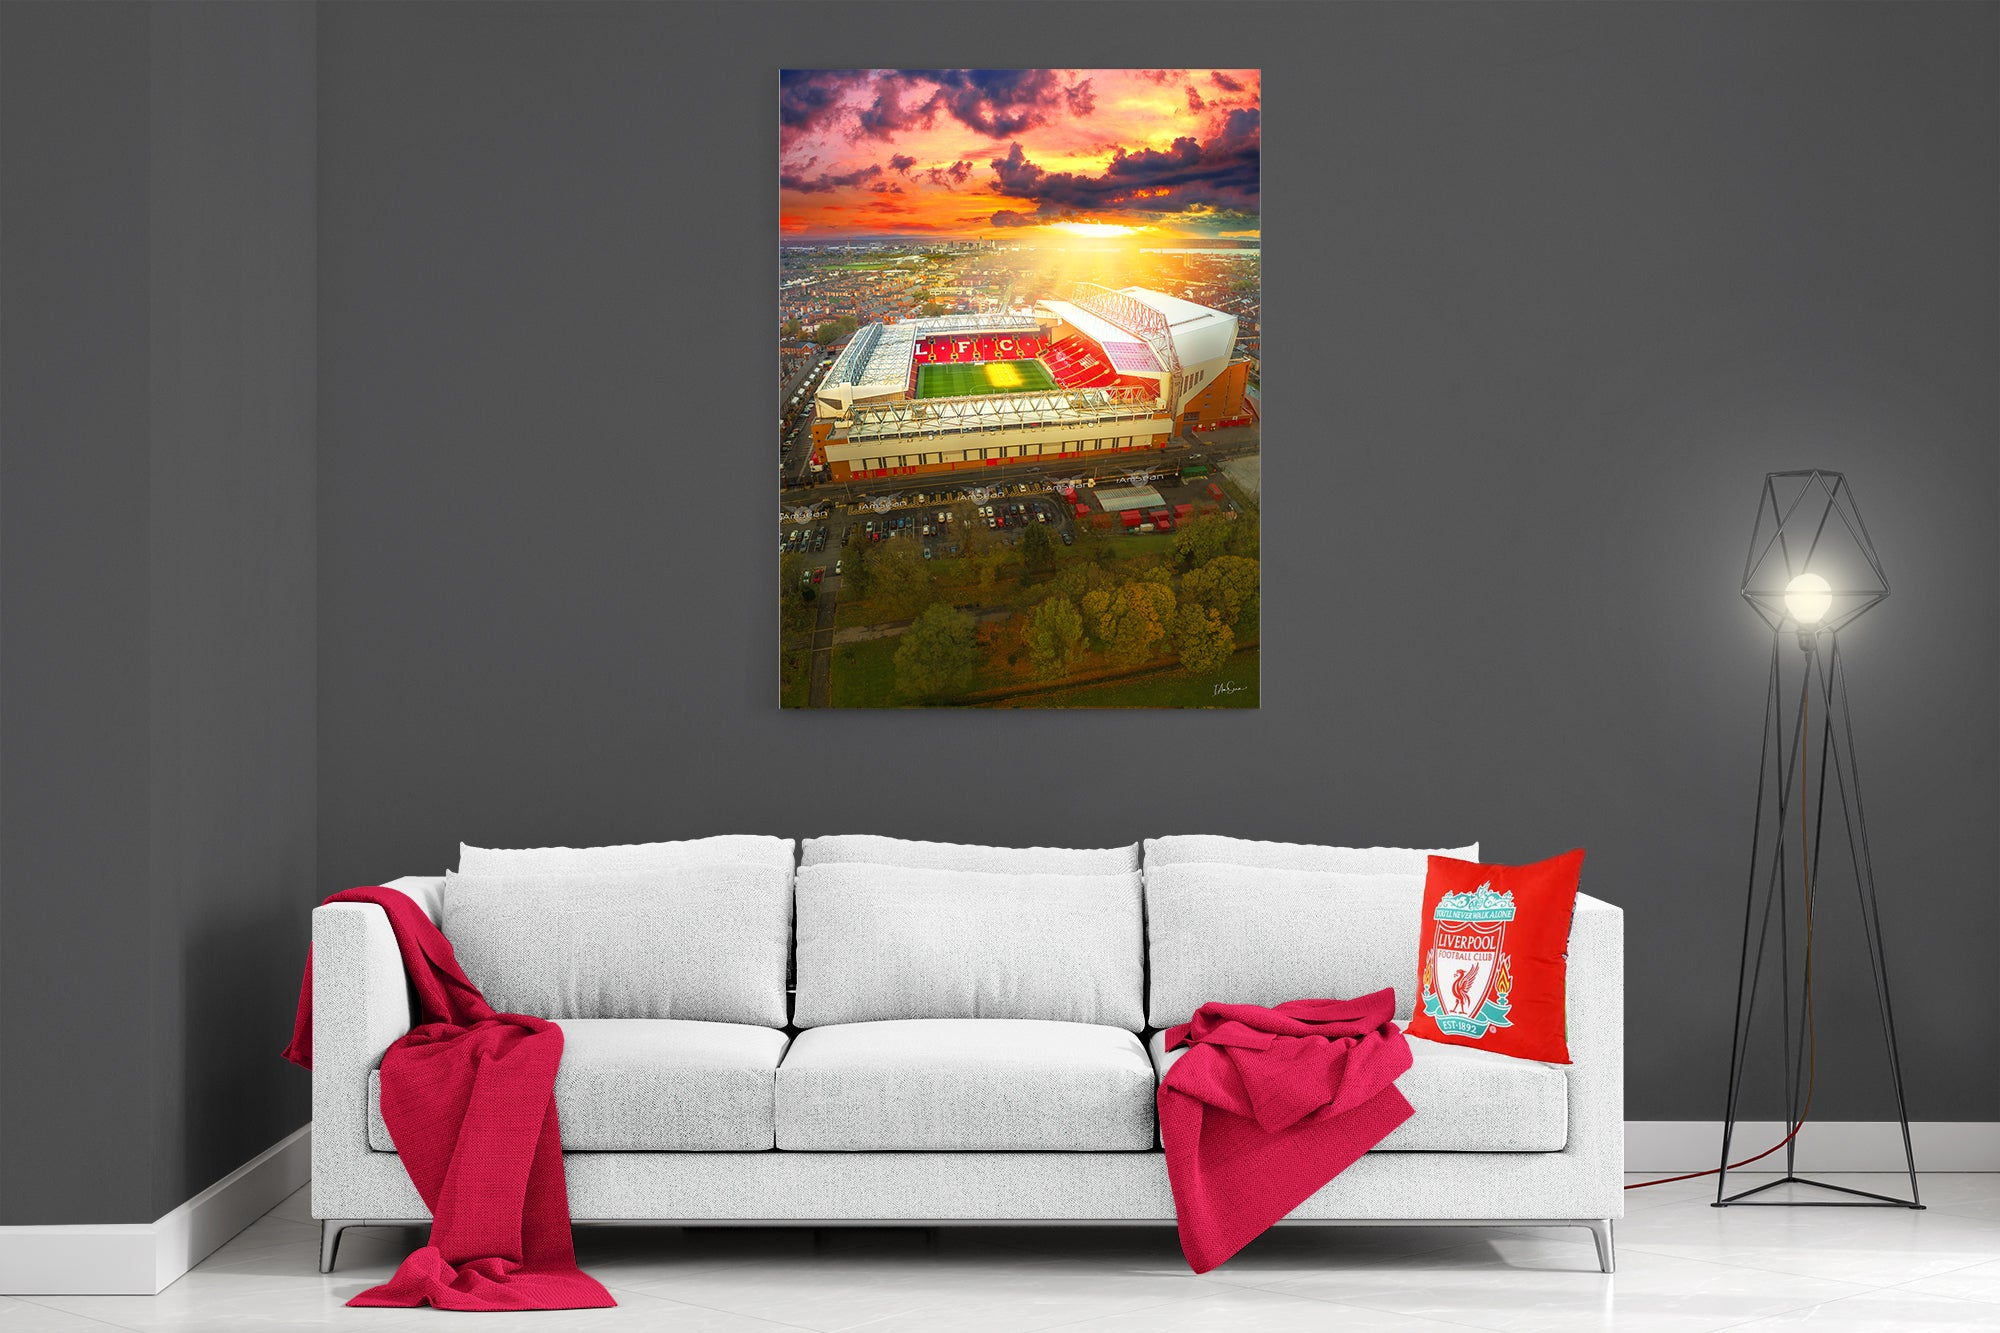 The Sun Always Shines On Anfield - Poster Print